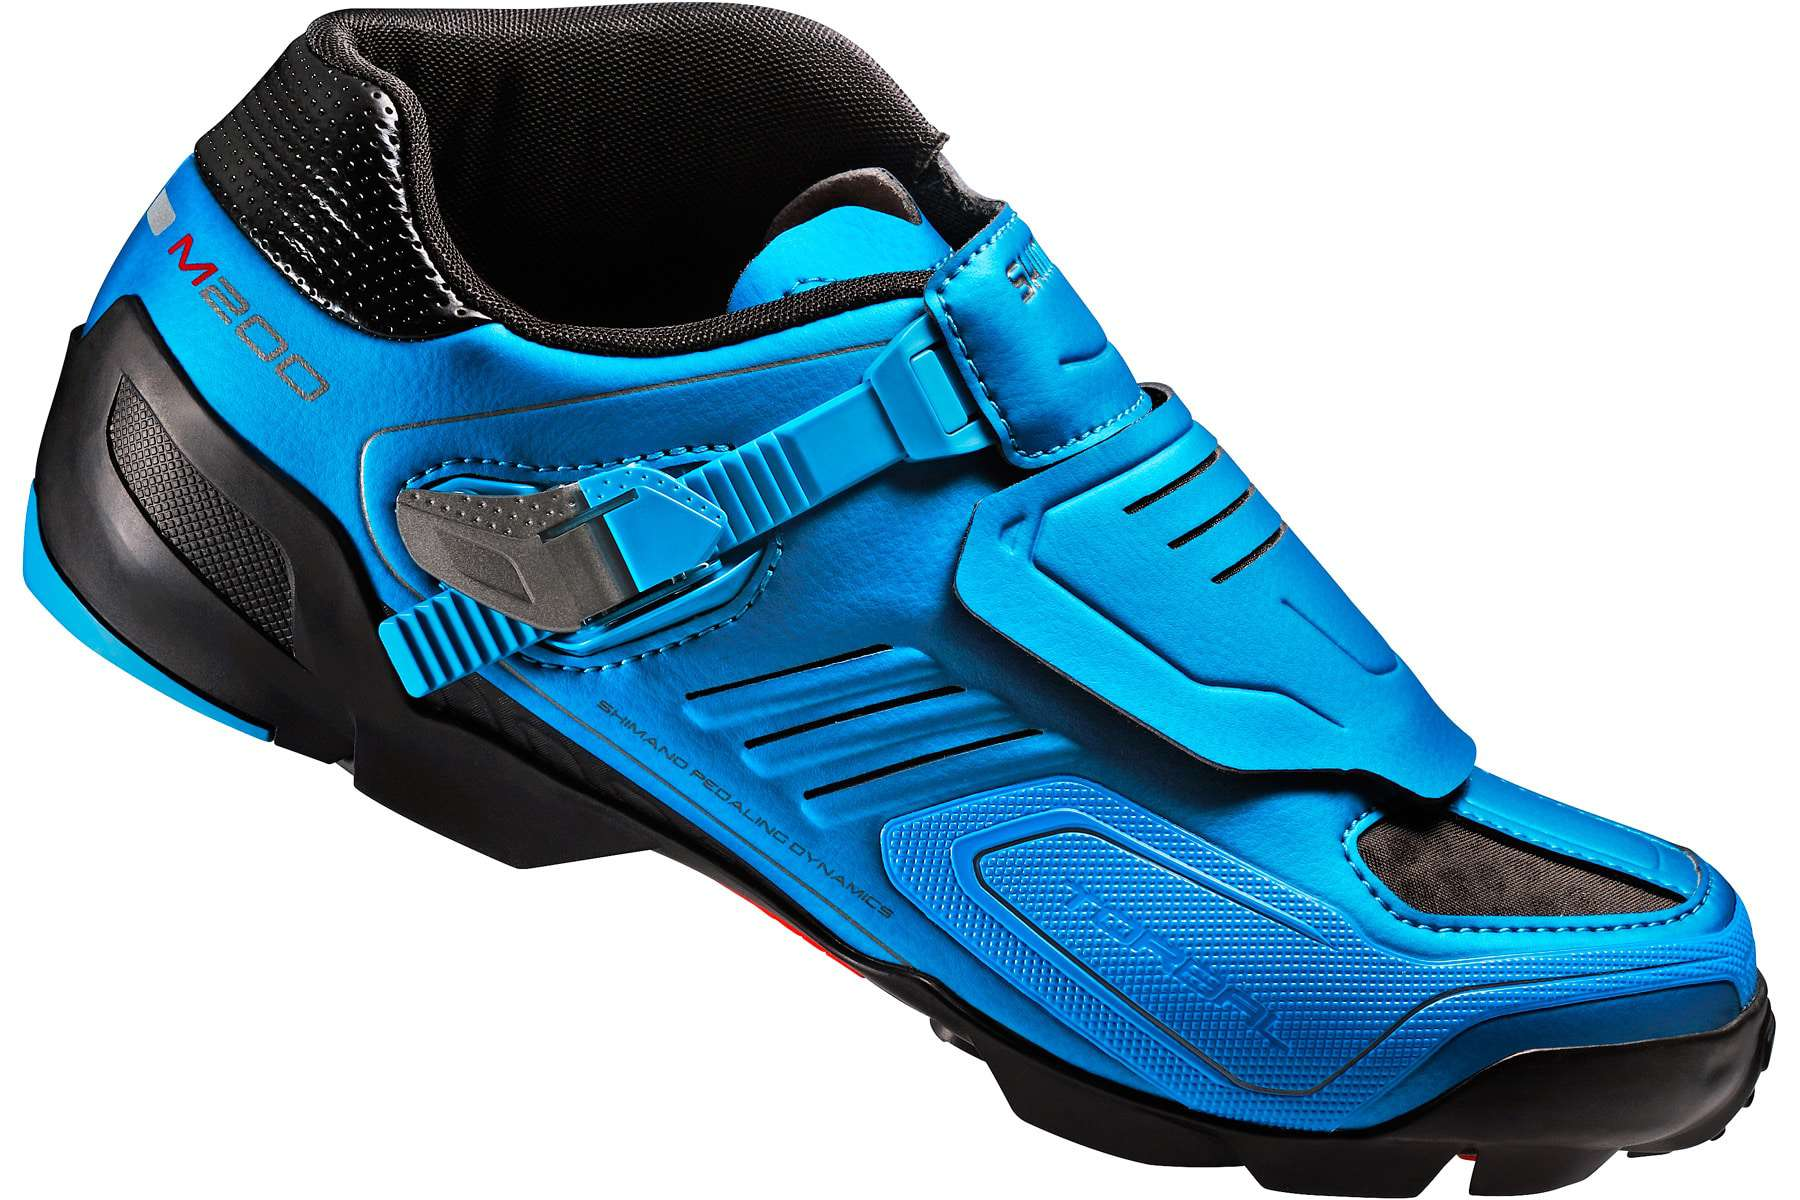 15 Best Cycling Shoes and Pedals of 2018 - Buying Guide and Reviews 54